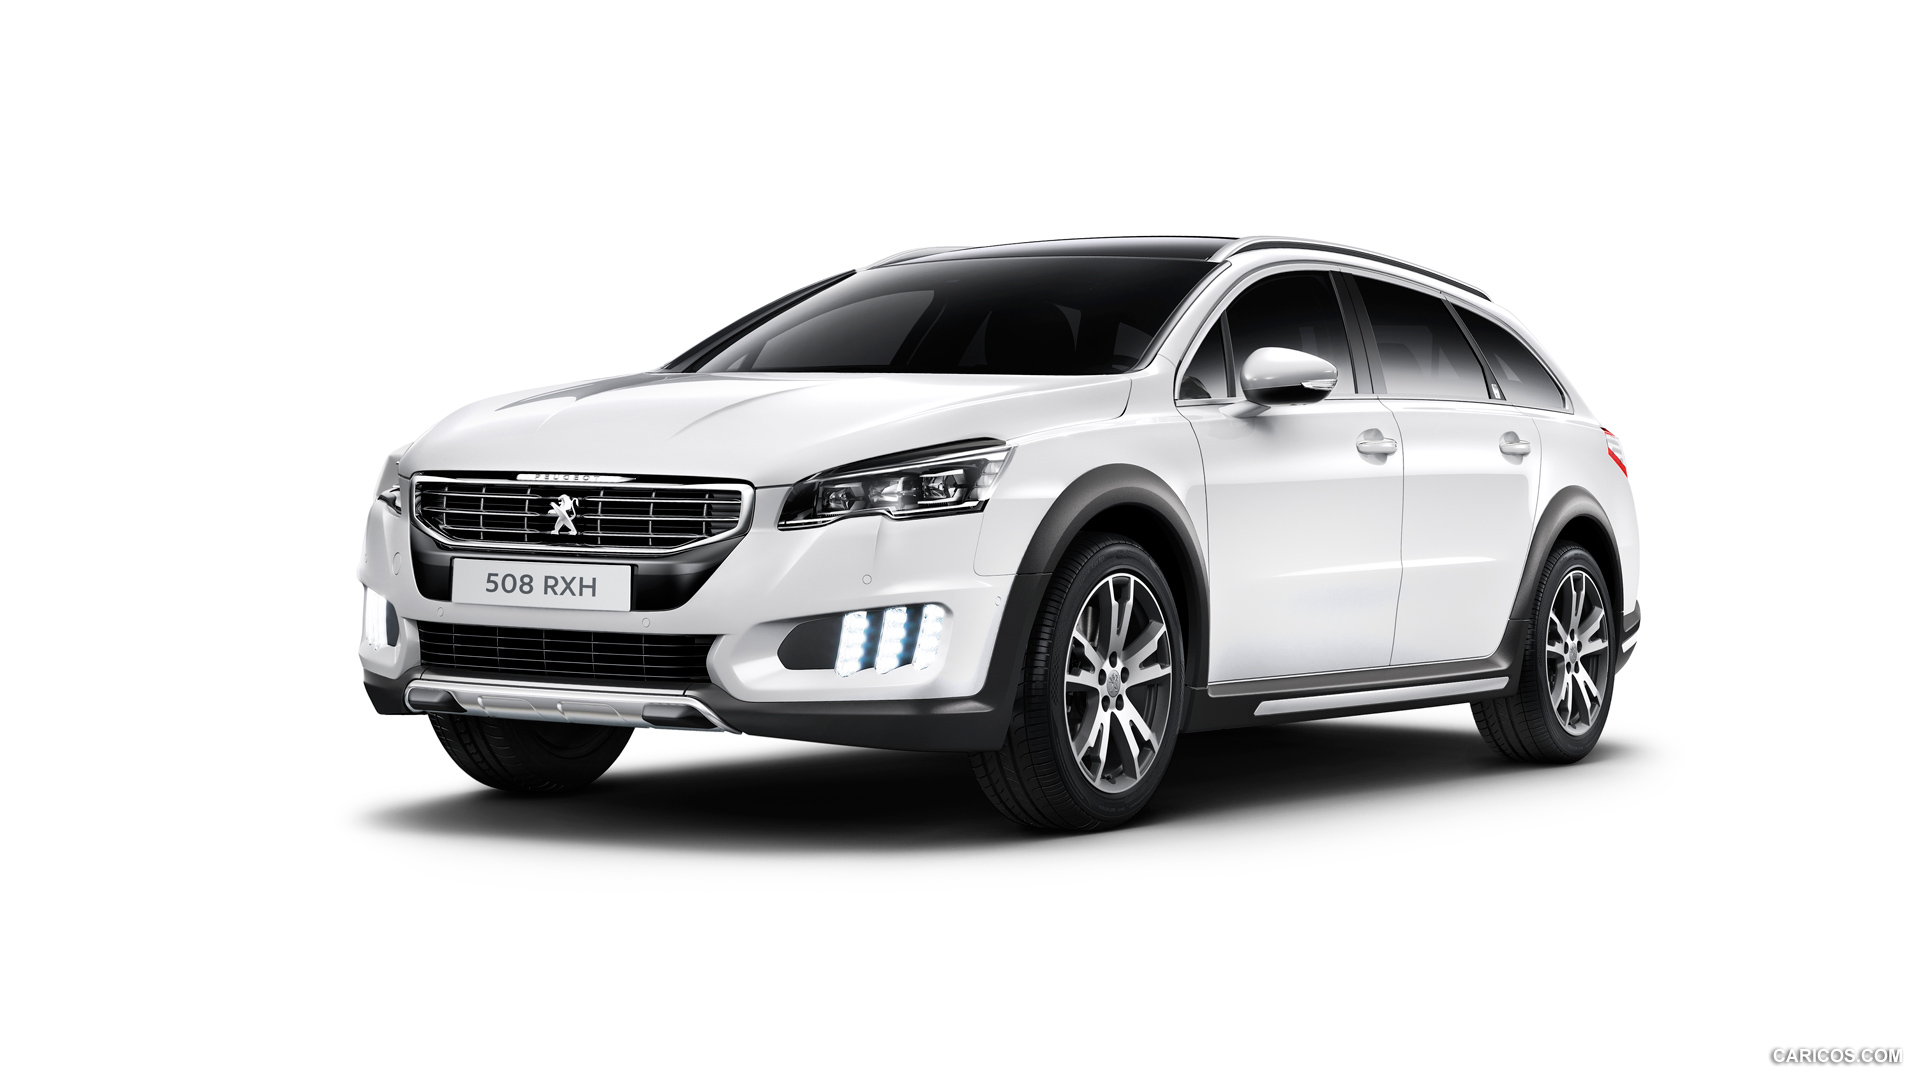 Peugeot 508 picture 122949 peugeot photo gallery for Photo peugeot 508